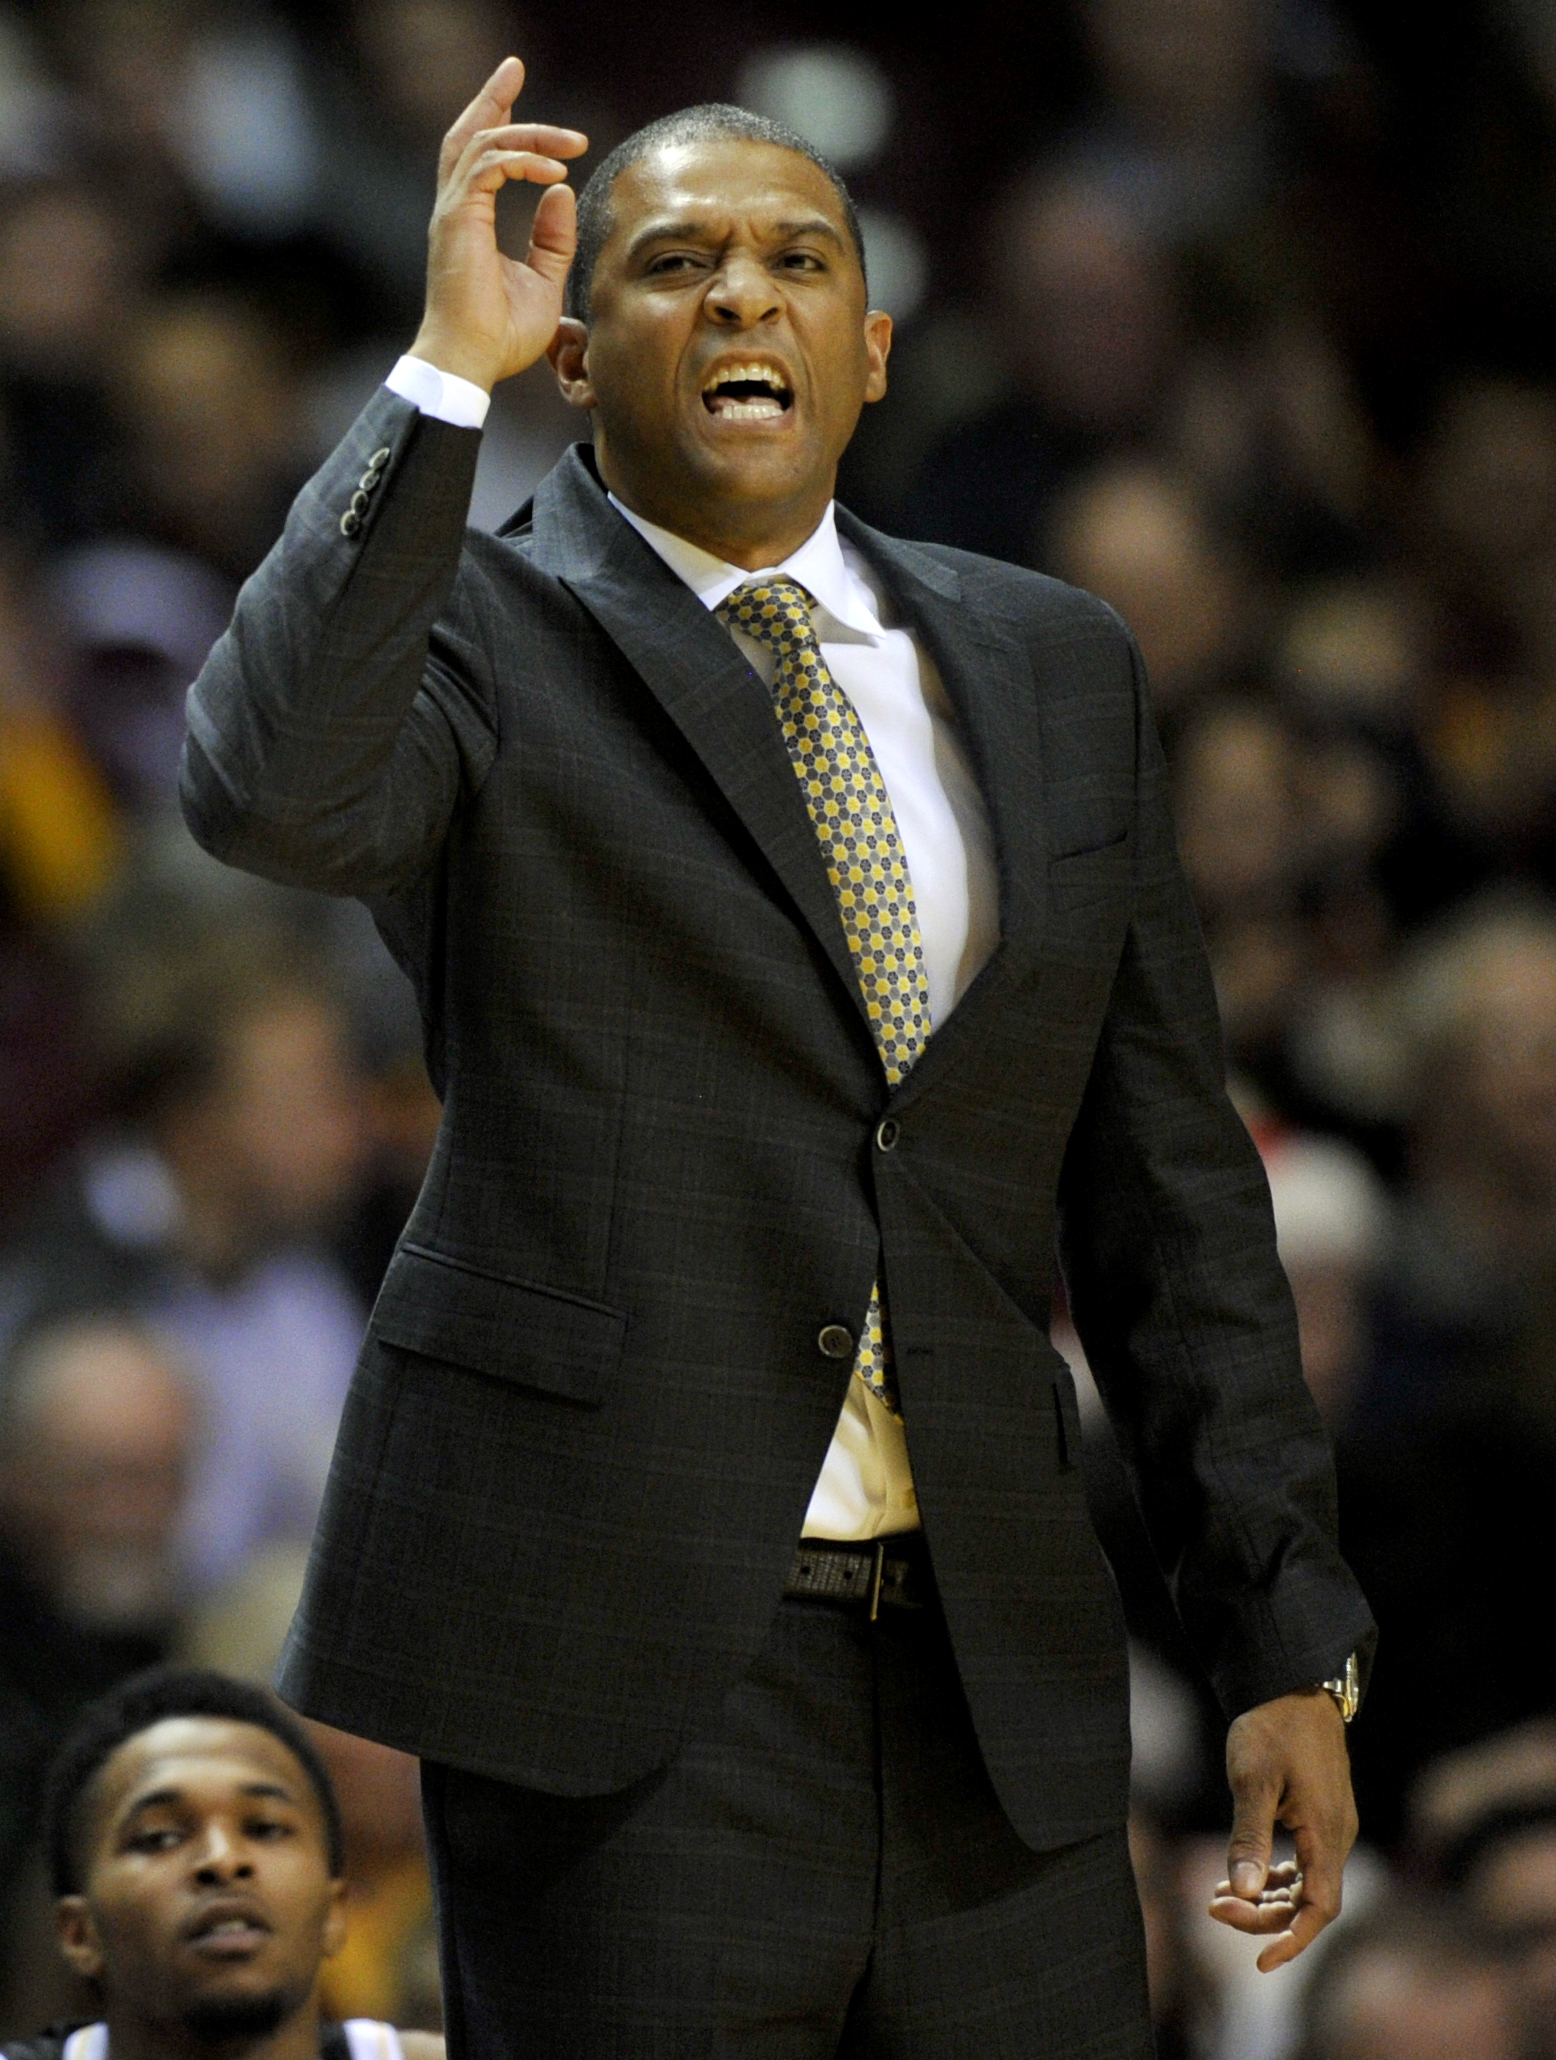 Milwaukee coach Rob Jeter reacts to a play during the second half of his team's NCAA college basketball game against Minnesota on Wednesday, Dec. 23, 2015, in Minneapolis. Milwaukee won 74-65. (AP Photo/Hannah Foslien)